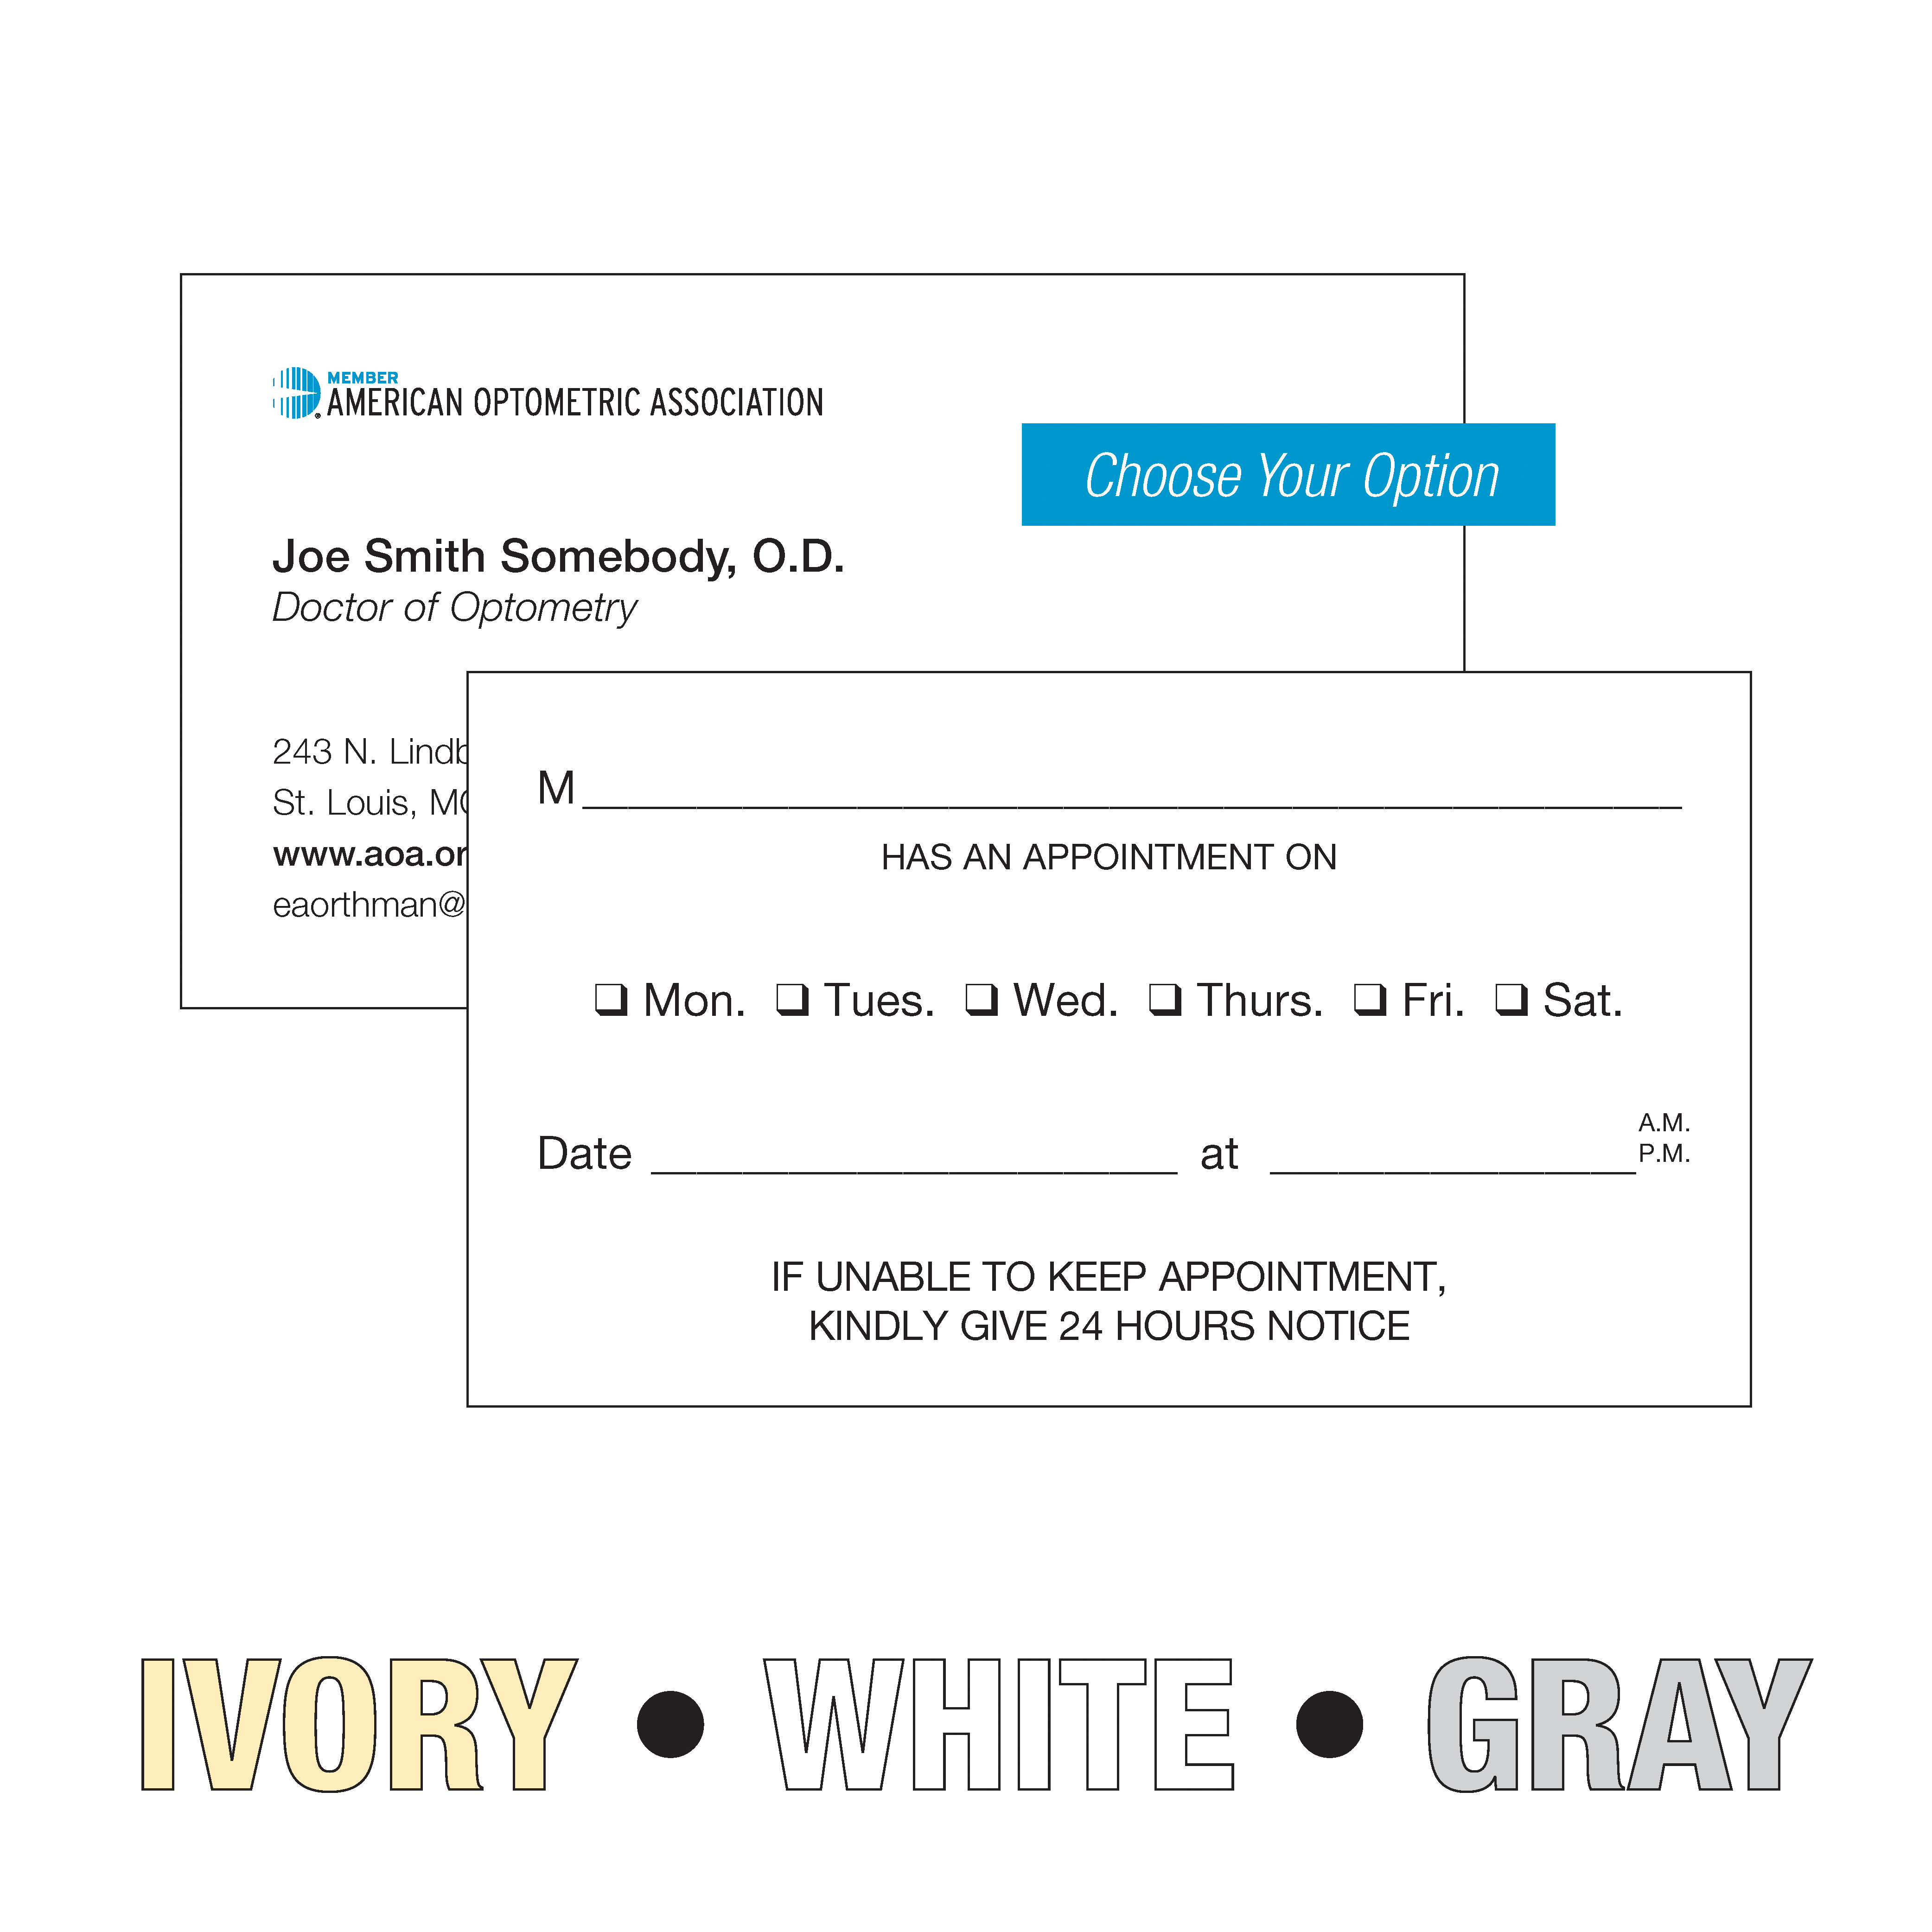 American optometric association 2 sided business cards with appt on back stationery colourmoves